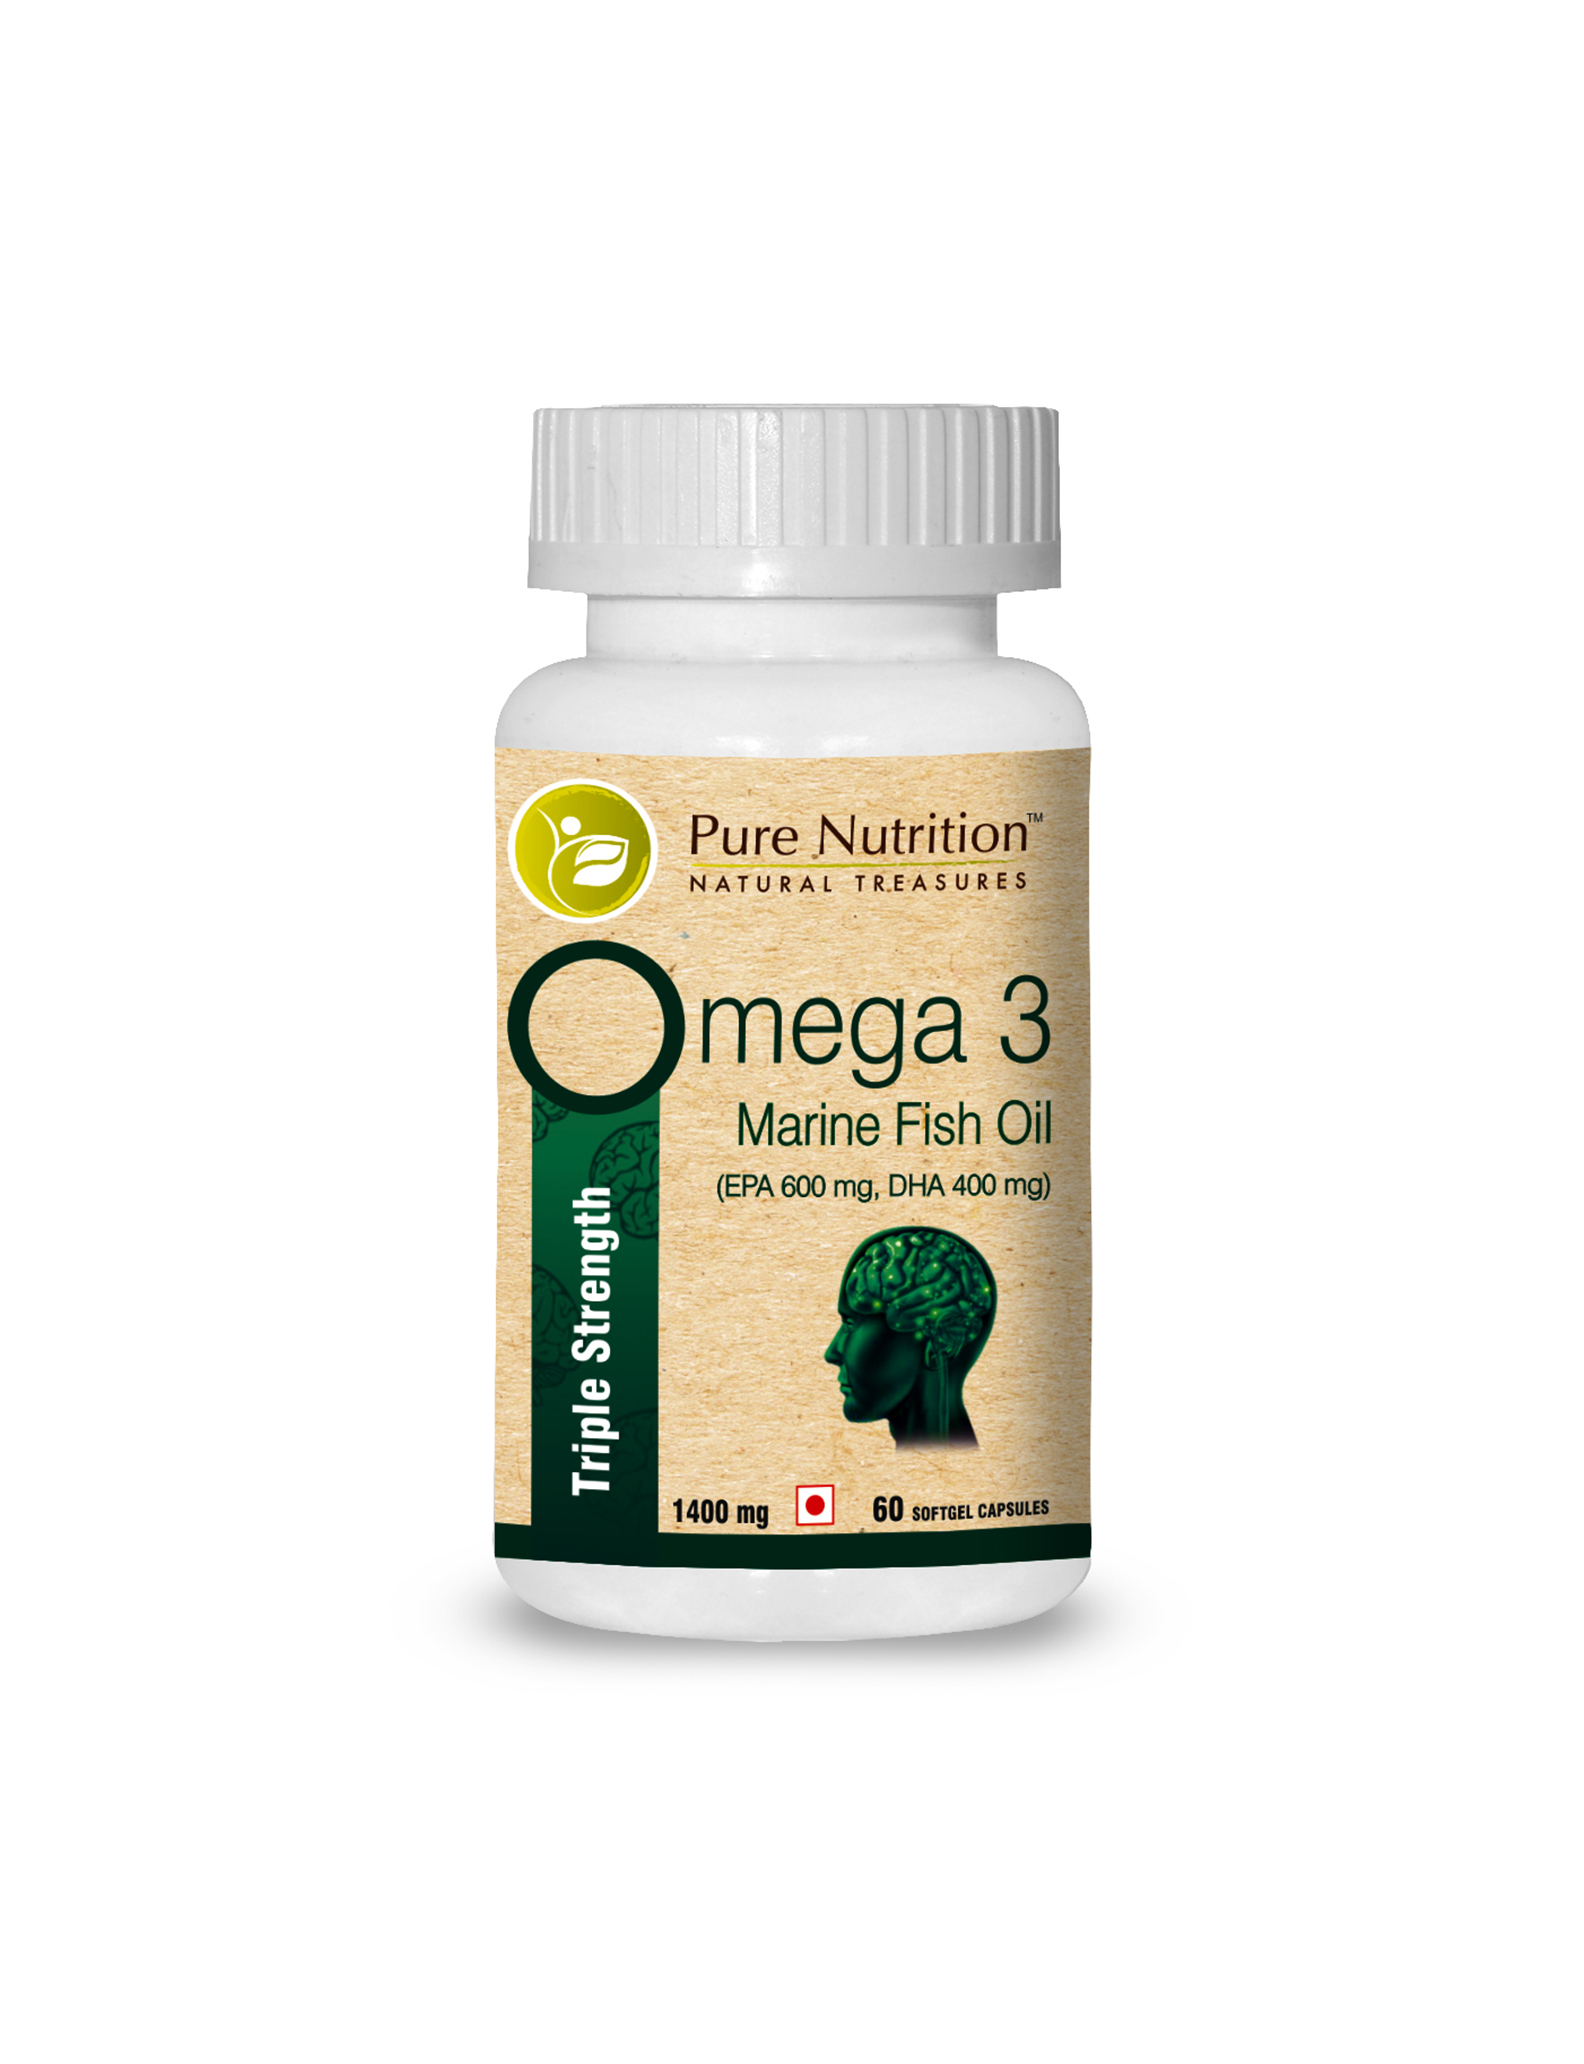 Omega 3 Marine Fish Oil Capsules Helps Improve Brain Functions 1400 Mg Buy Online At Health Total